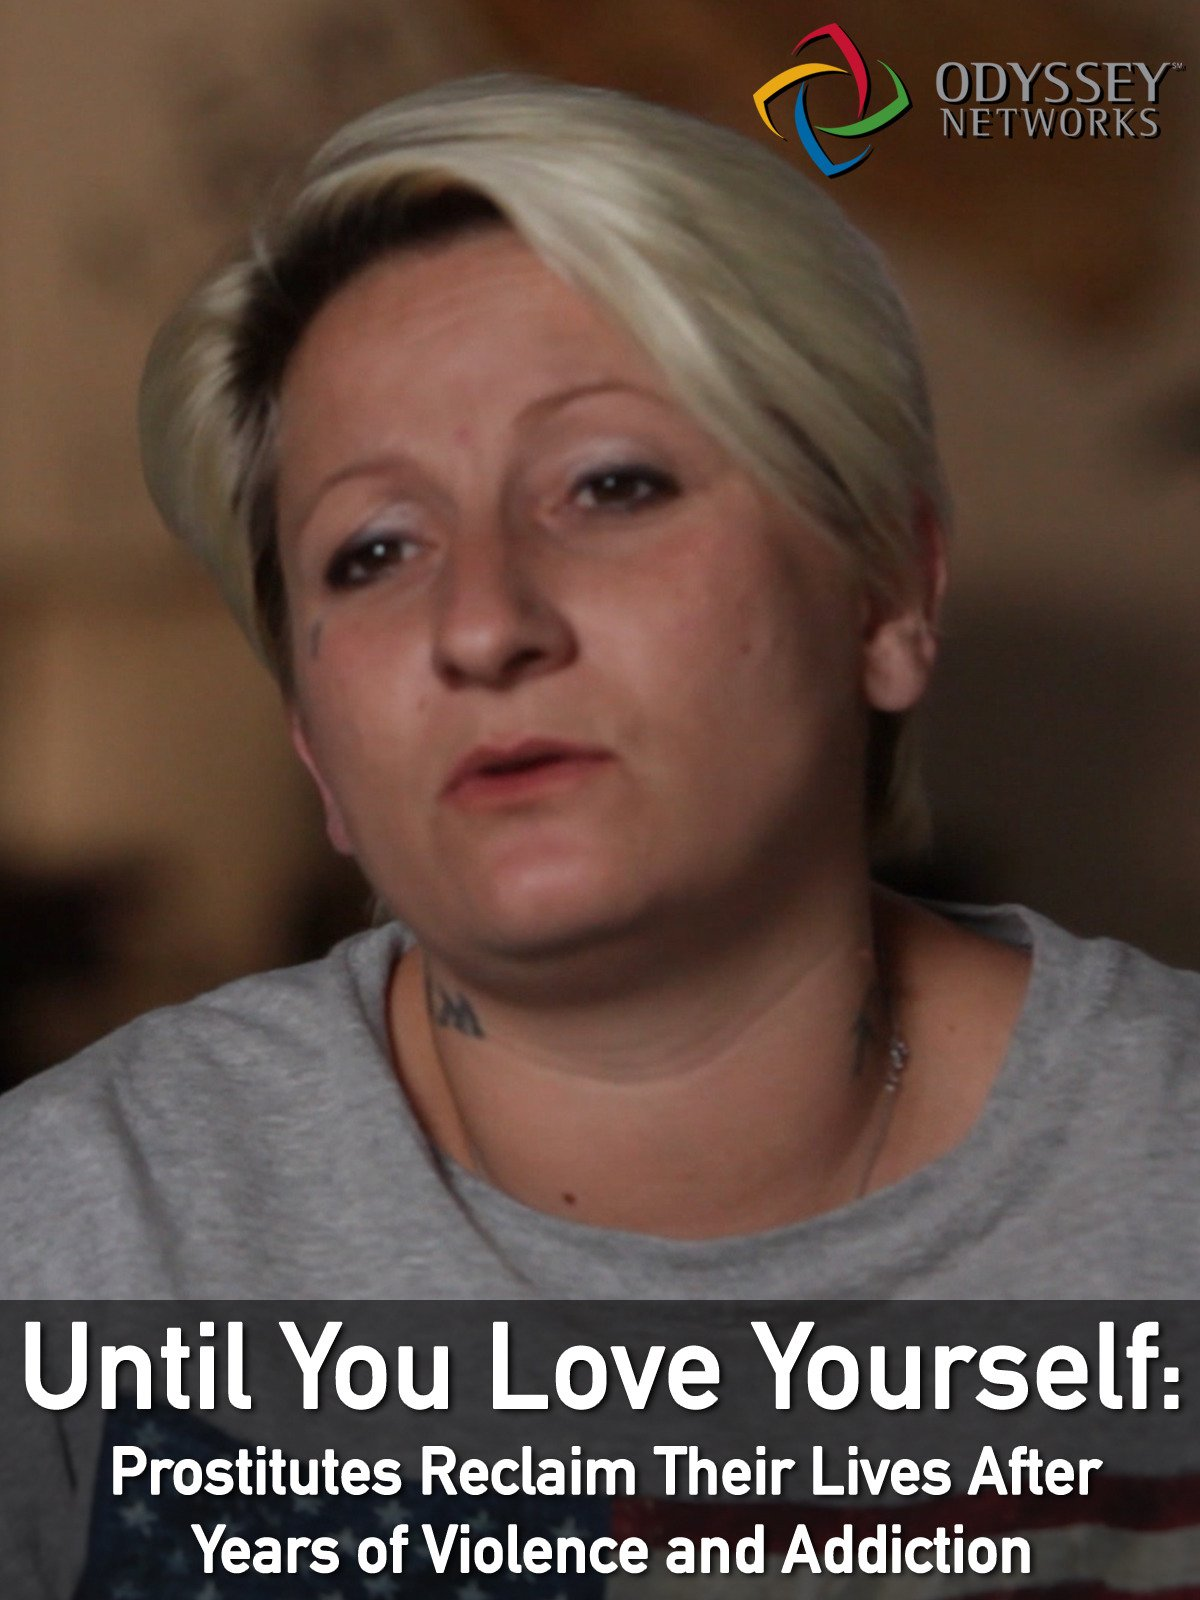 Clip: Until You Love Yourself: Prostitutes Reclaim Their Lives After Years of Violence and Addiction